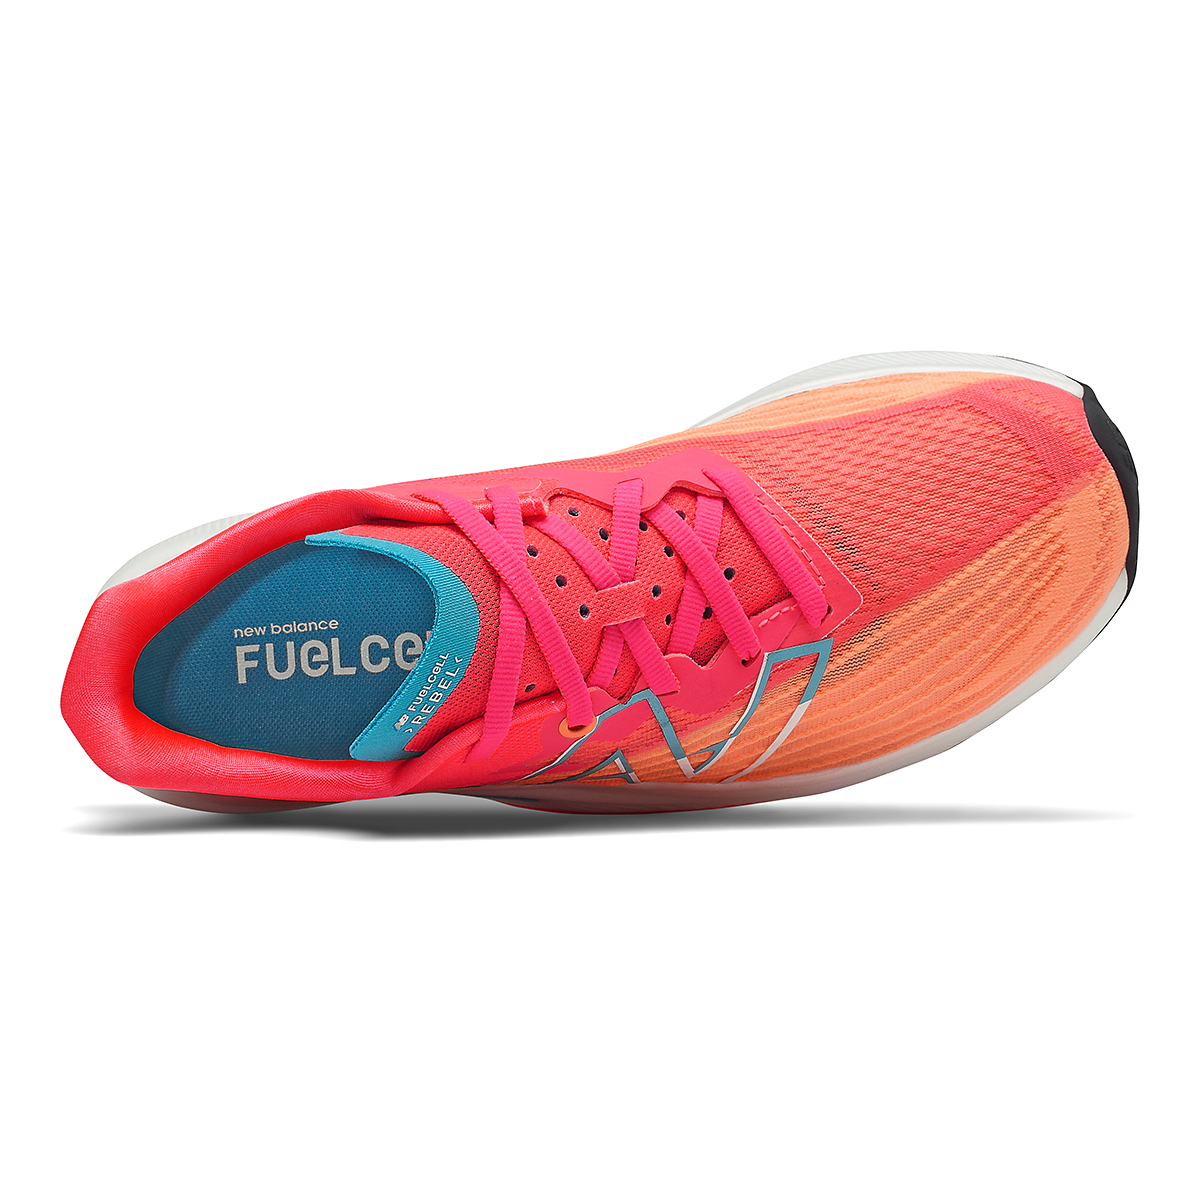 Women's New Balance Fuelcell Rebel V2 Running Shoe - Color: Citrus Punch/Vivid Coral/Ghost Pepper - Size: 7 - Width: Regular, Citrus Punch/Vivid Coral/Ghost Pepper, large, image 3